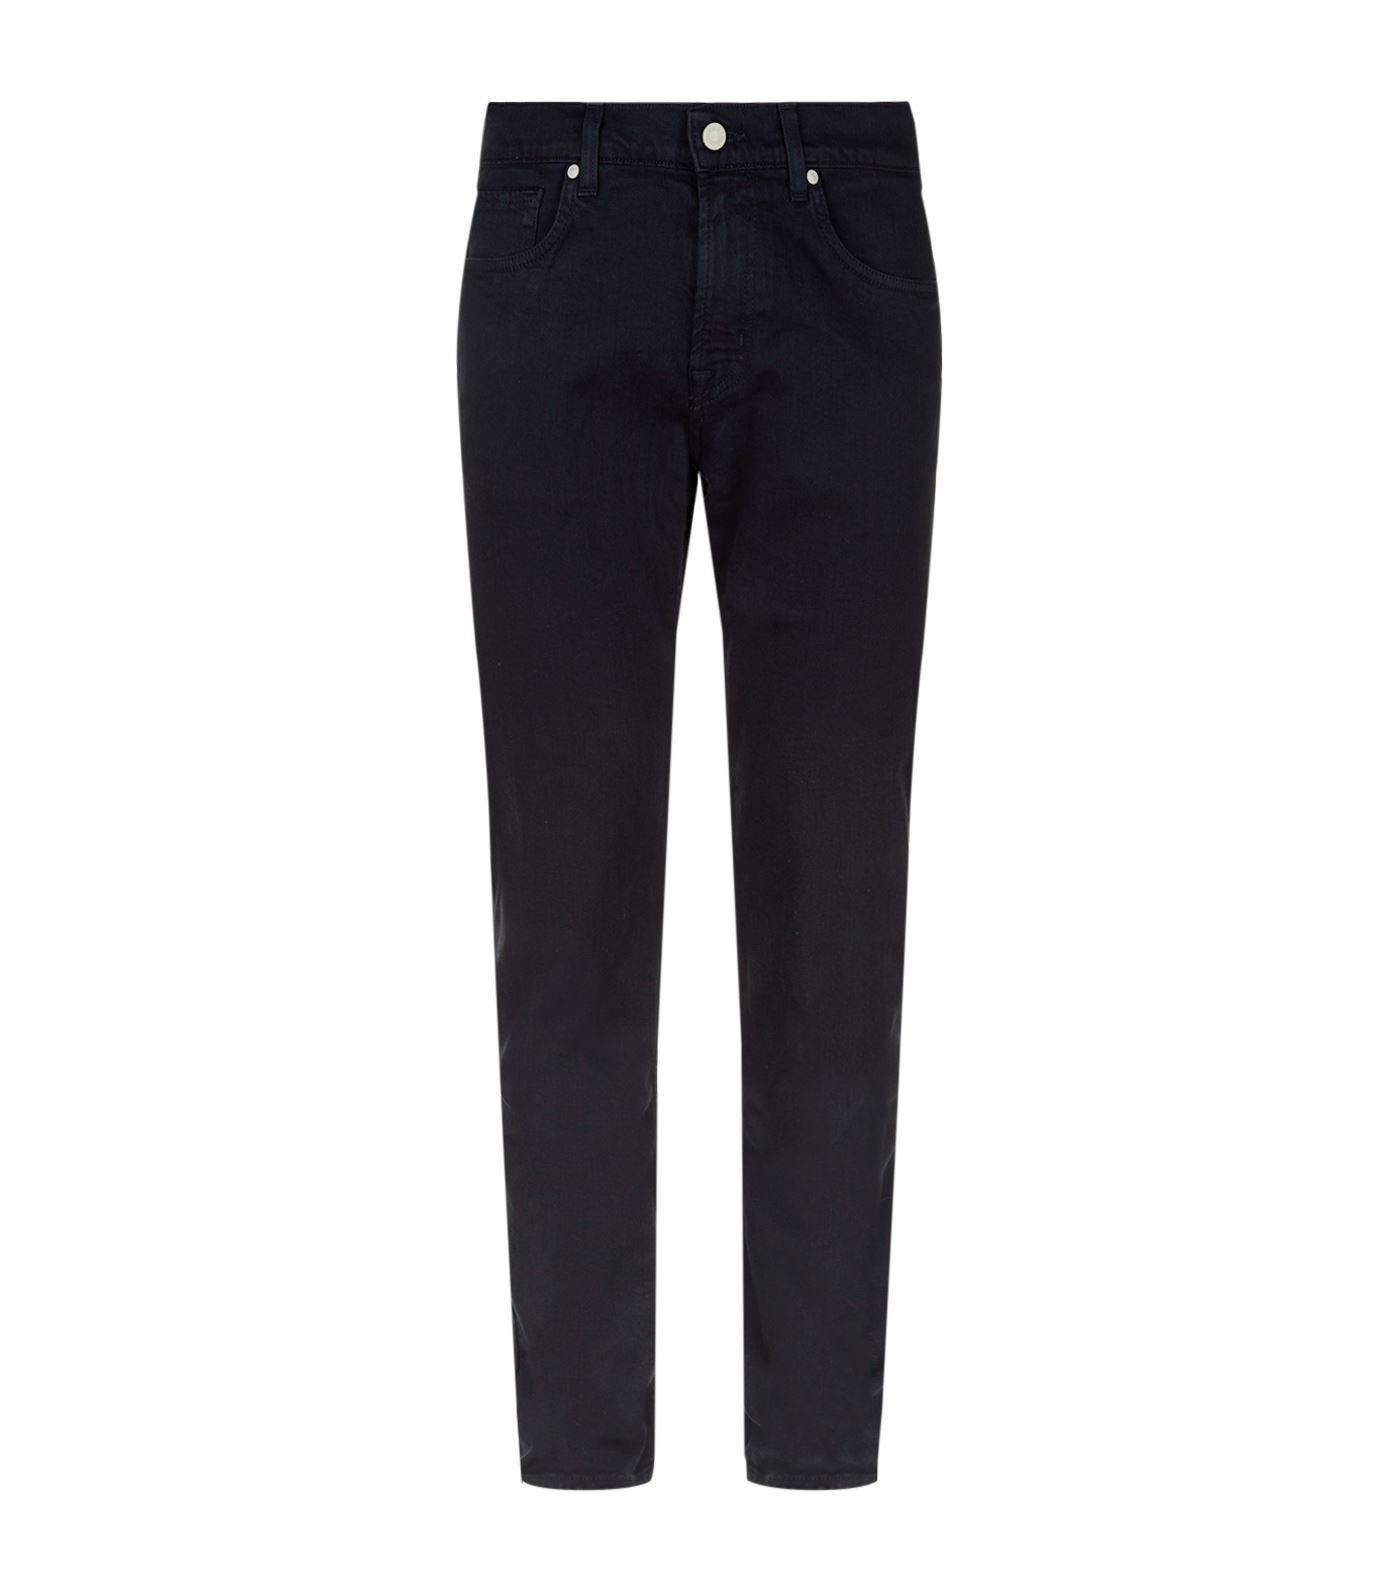 7 For All Mankind Slimmy Luxe Performance Jeans In Navy